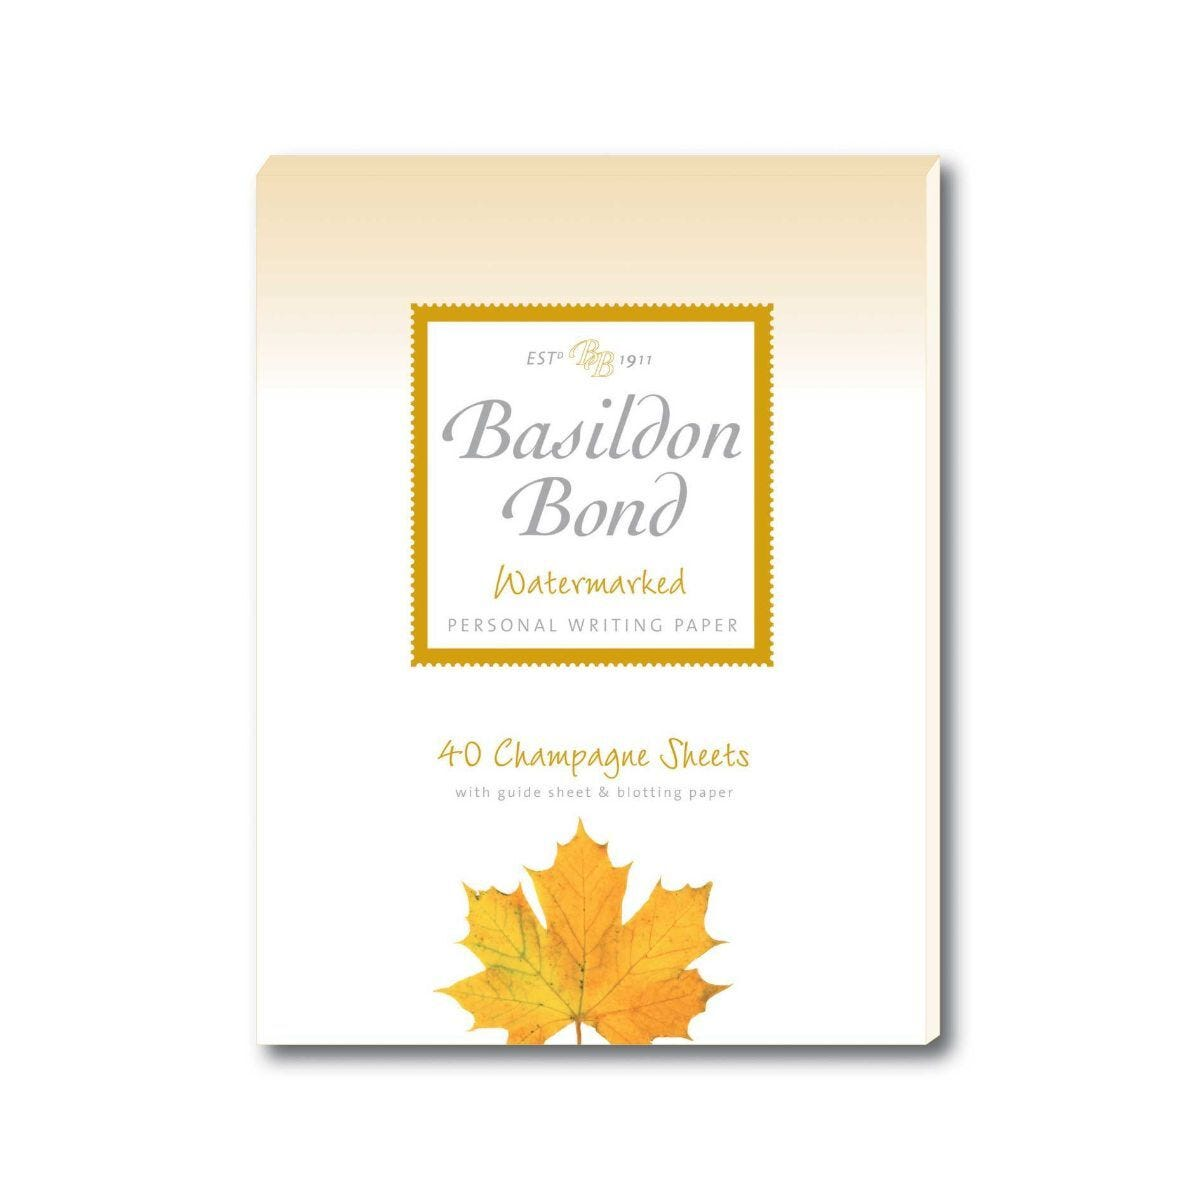 Basildon Bond Writing Pad 175x135mm 90gsm 80 Pages 40 Sheets